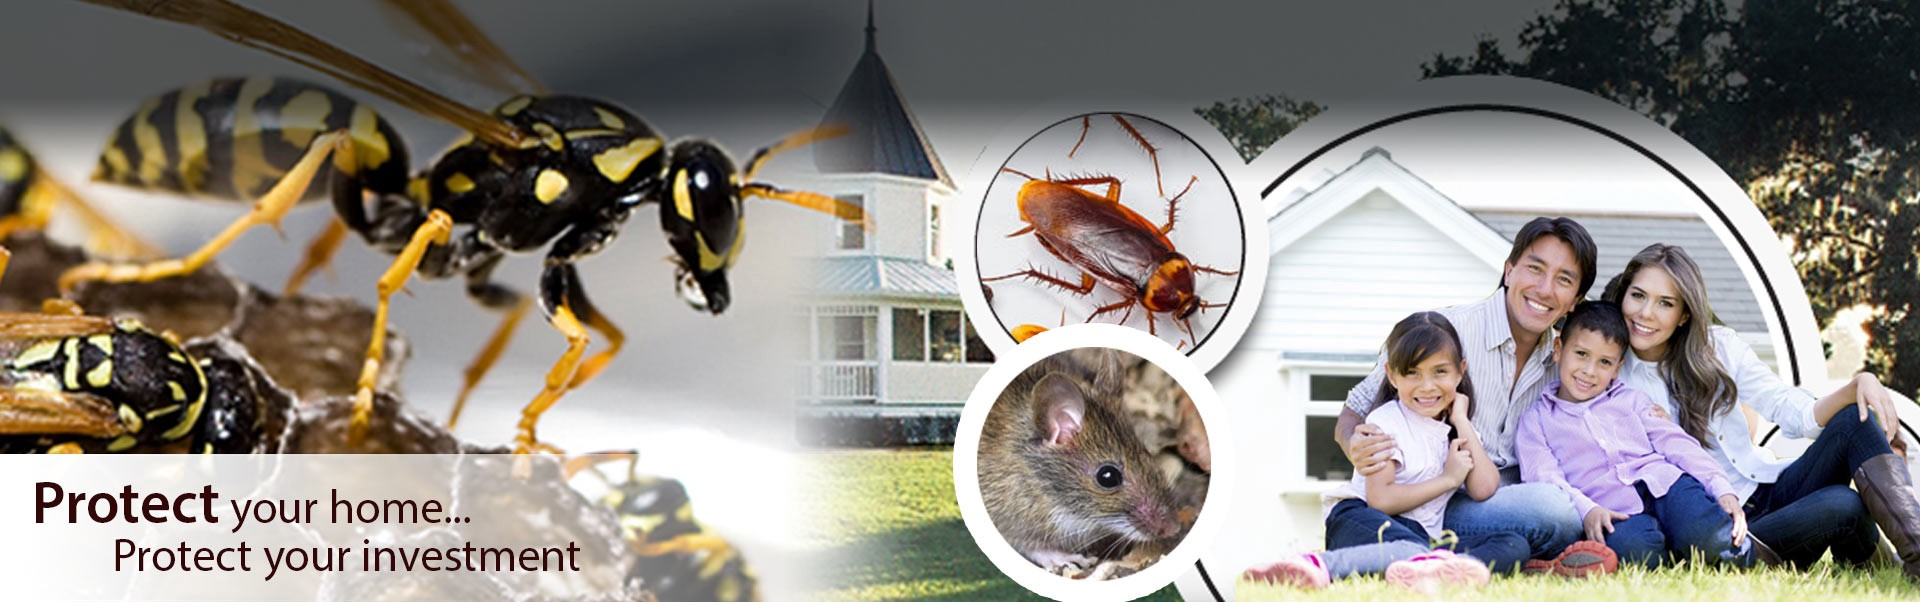 Which Treatment Is Best For Termite Control In Delhi Ncr Home Vs Expert By Quality Highcare Medium